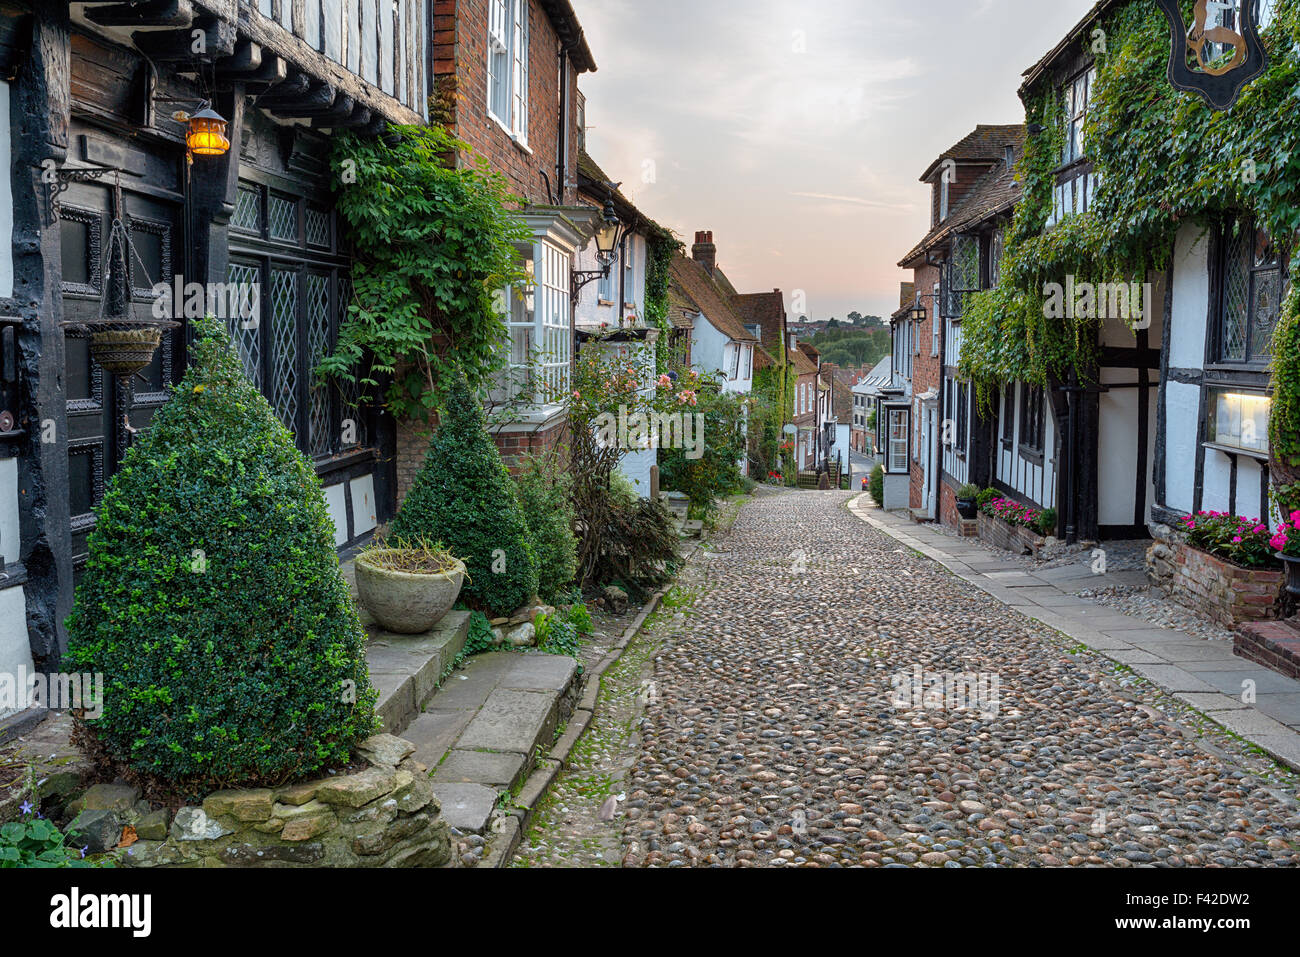 Beautiful half timbered houses on a cobbled street at Rye in east Sussex - Stock Image